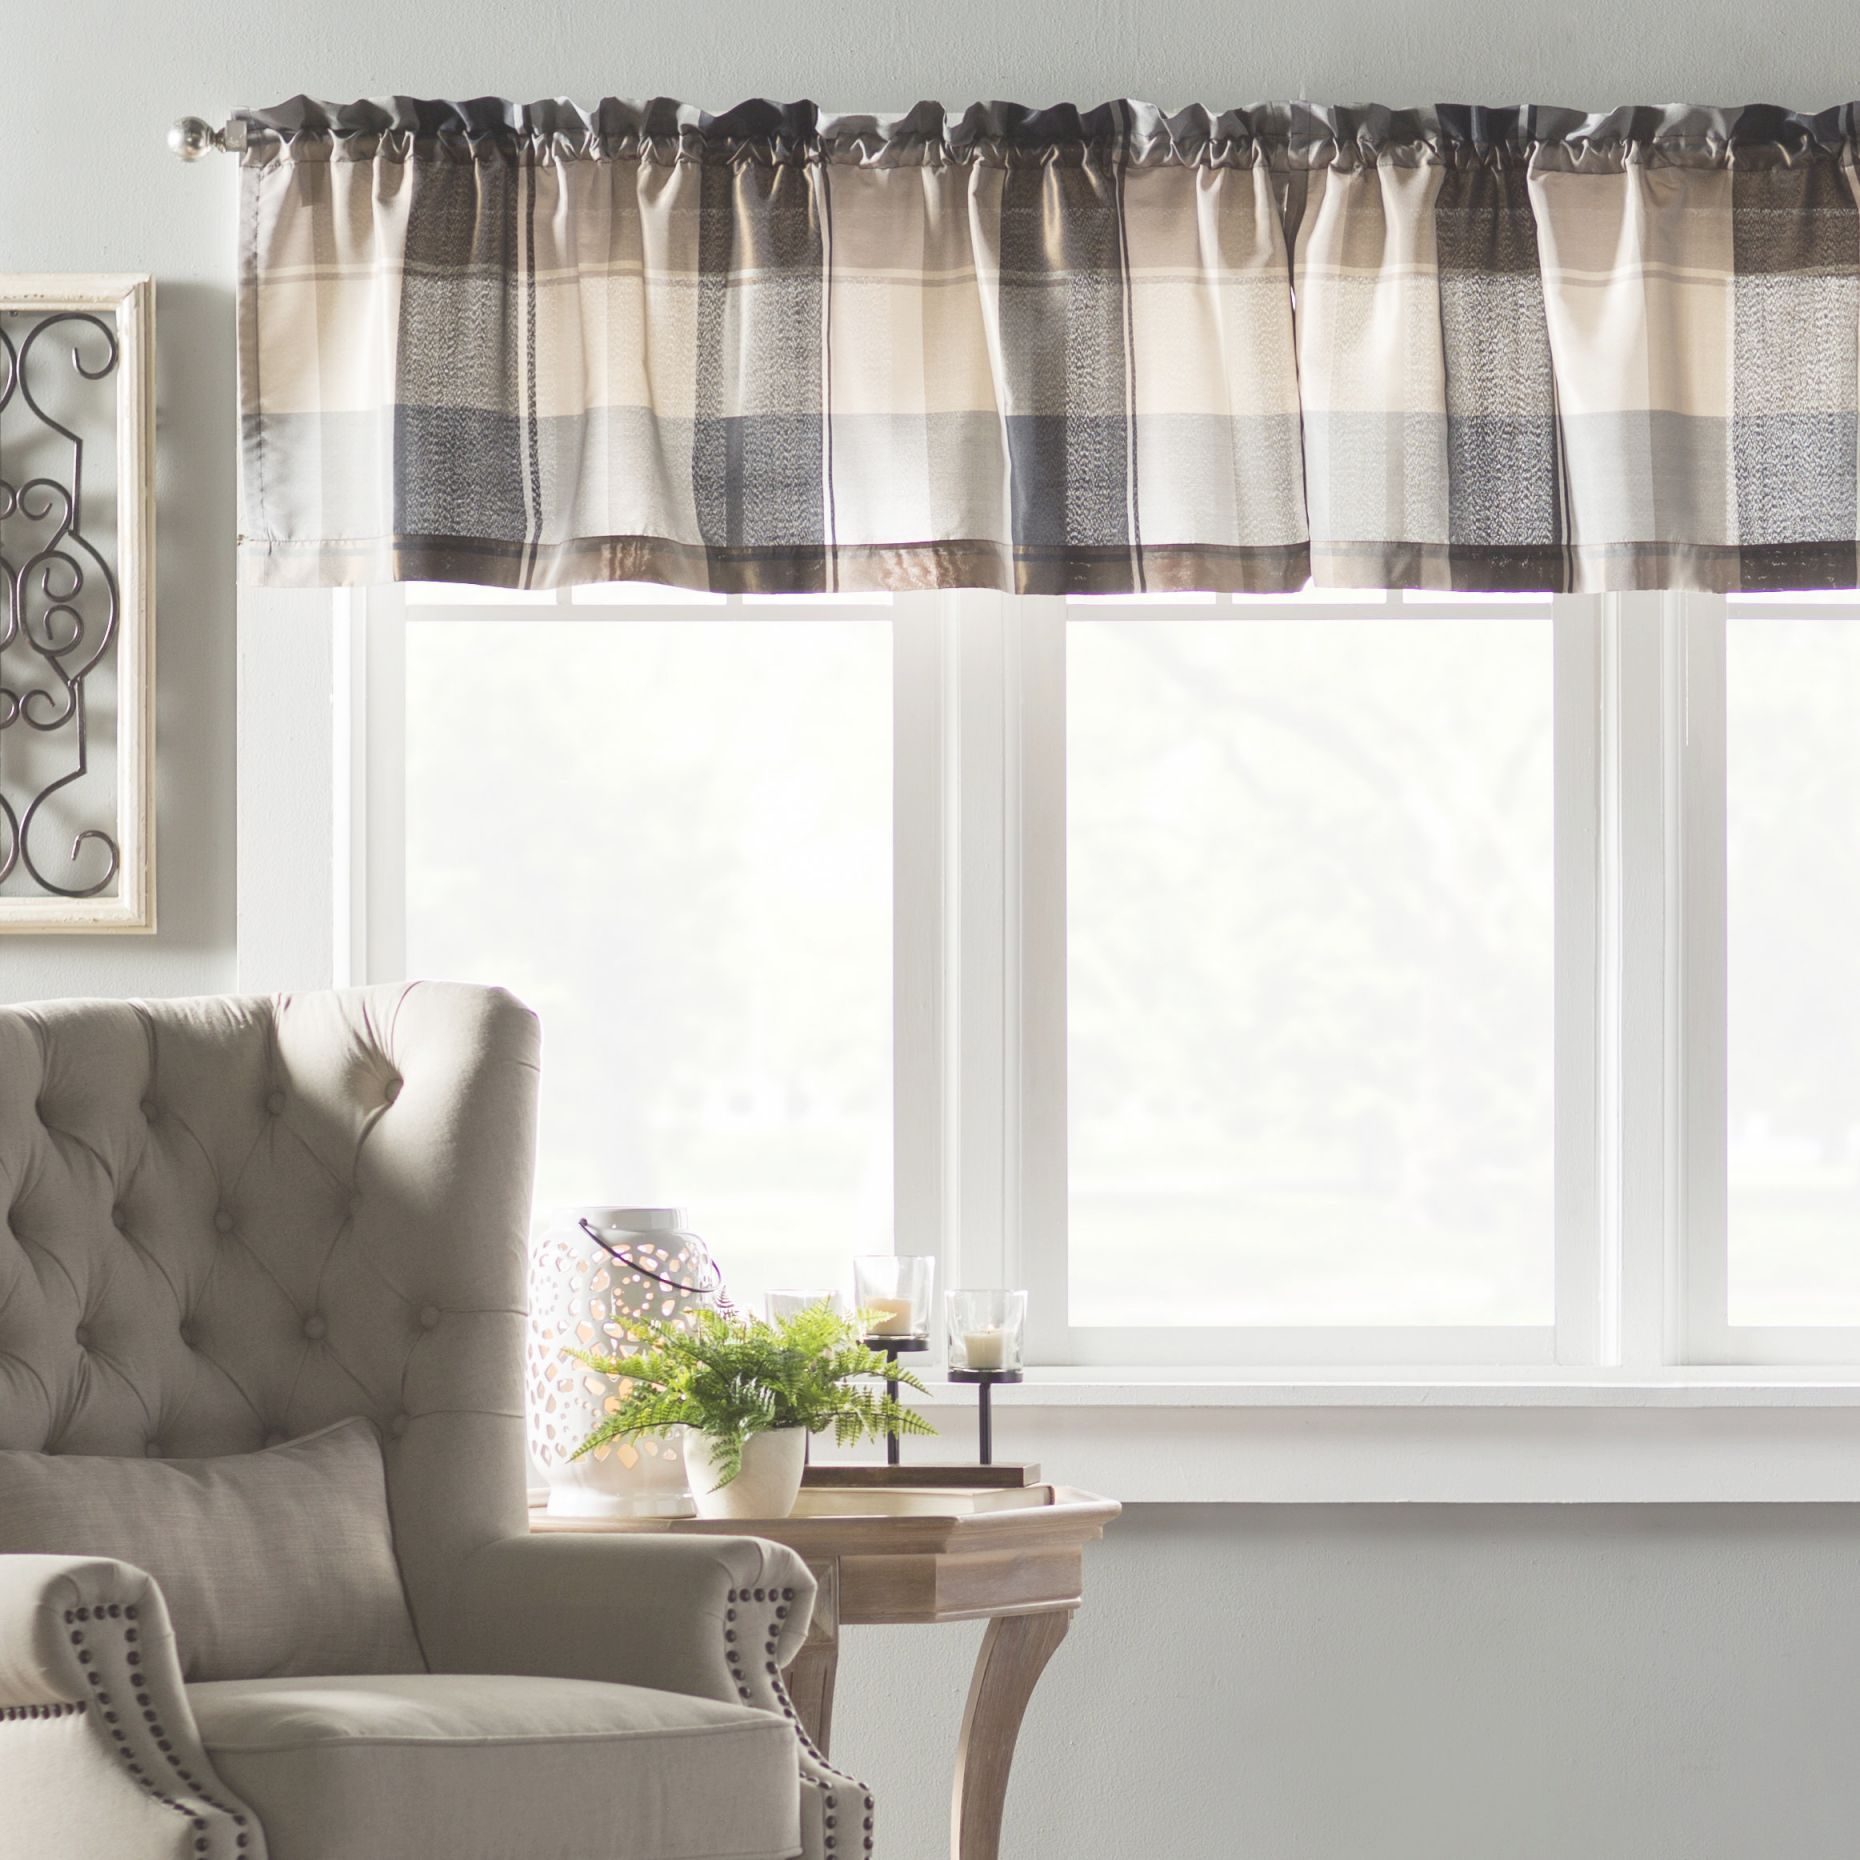 "Dempsey 54"" Curtain Valance with regard to Best of Curtains For Living Room With Brown Furniture"